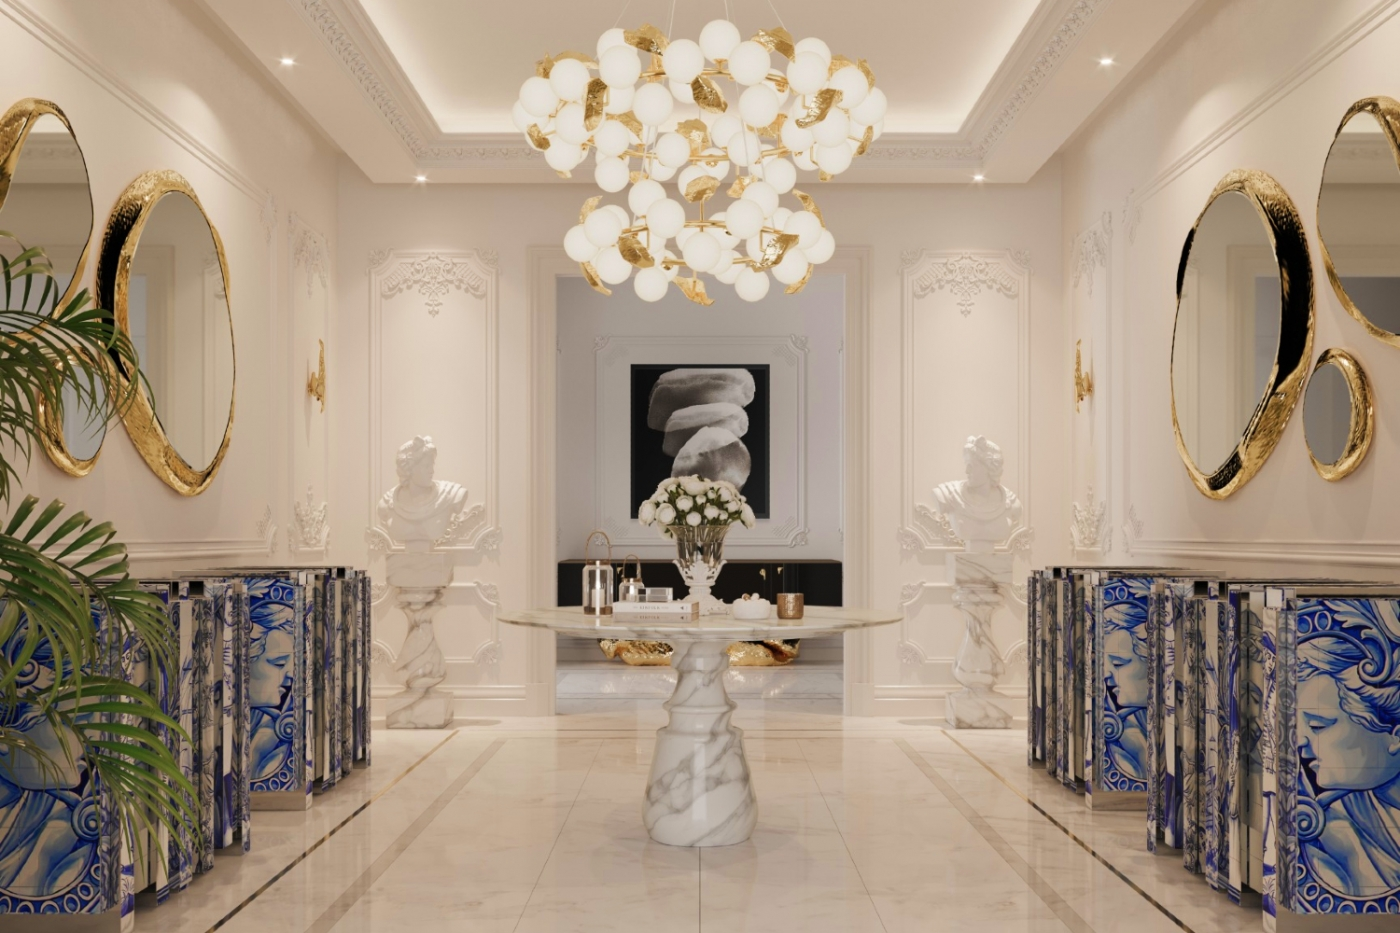 luxury entryway A Millionaire And Luxury Entryway That Makes A Killer First Impression 1 3 1400x933